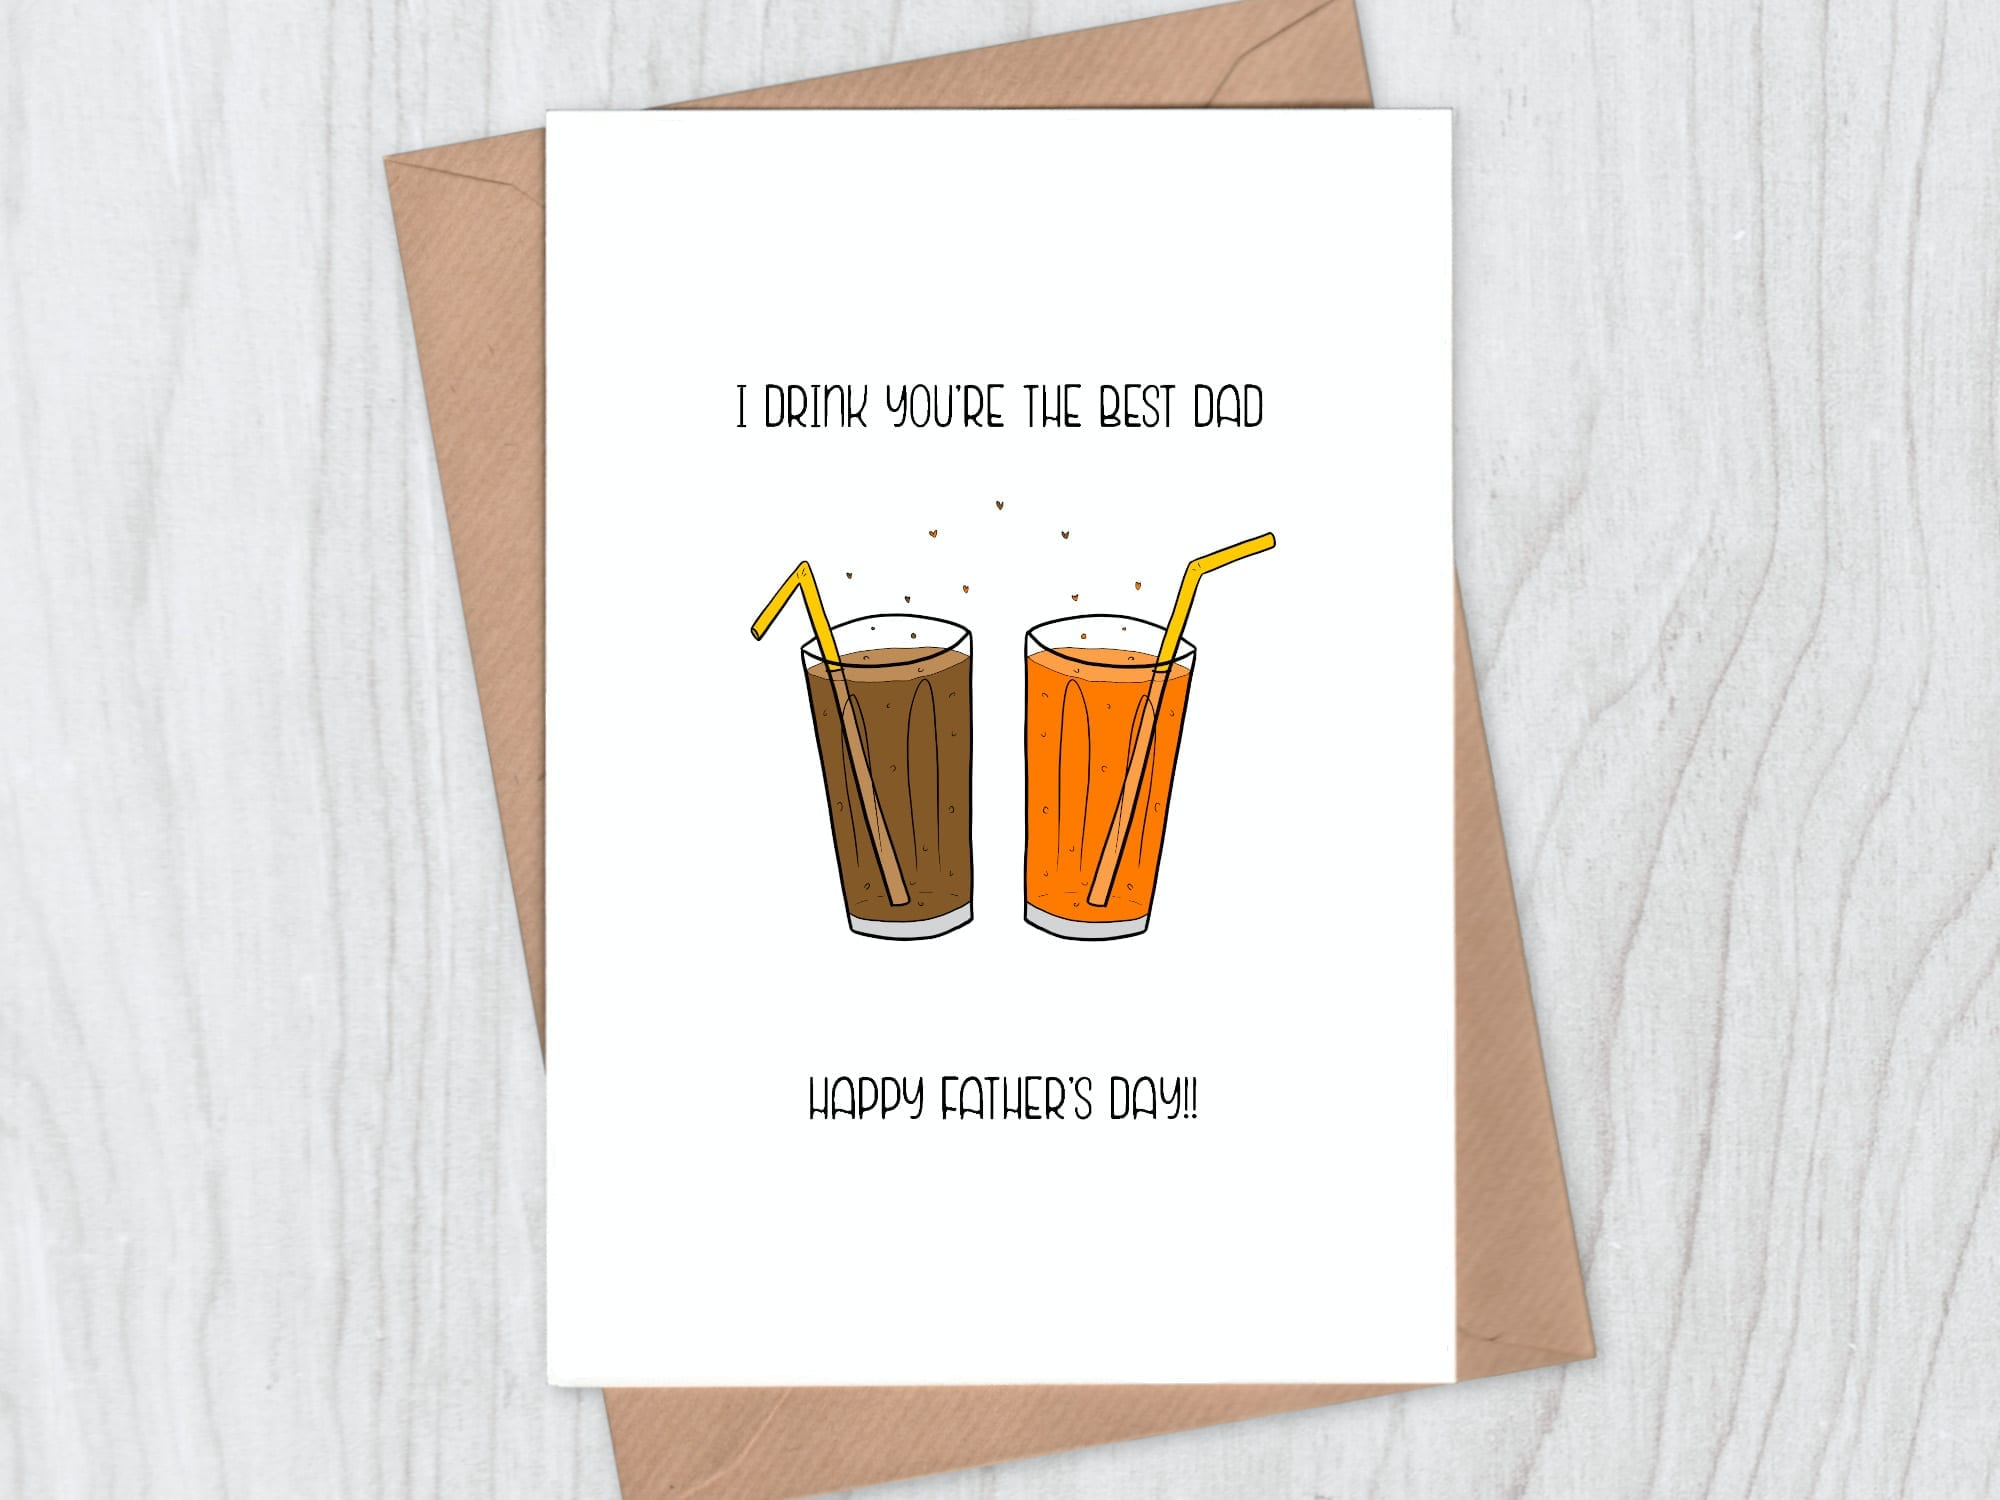 I drink you're the best dad from father's day card collection